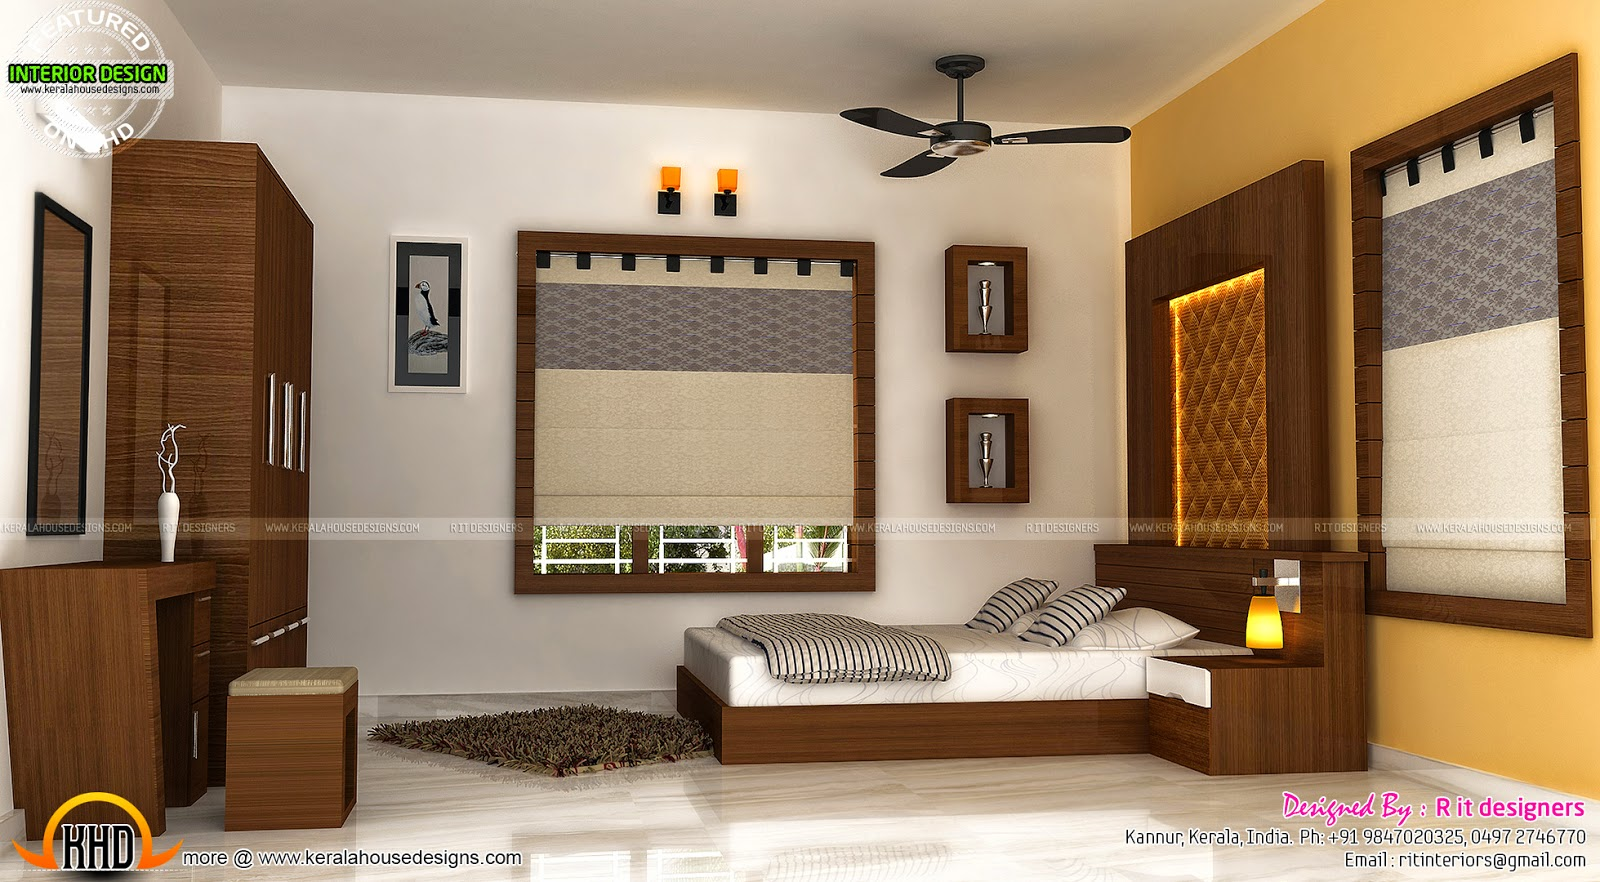 Staircase bedroom dining interiors kerala home design for Interior design 70s house